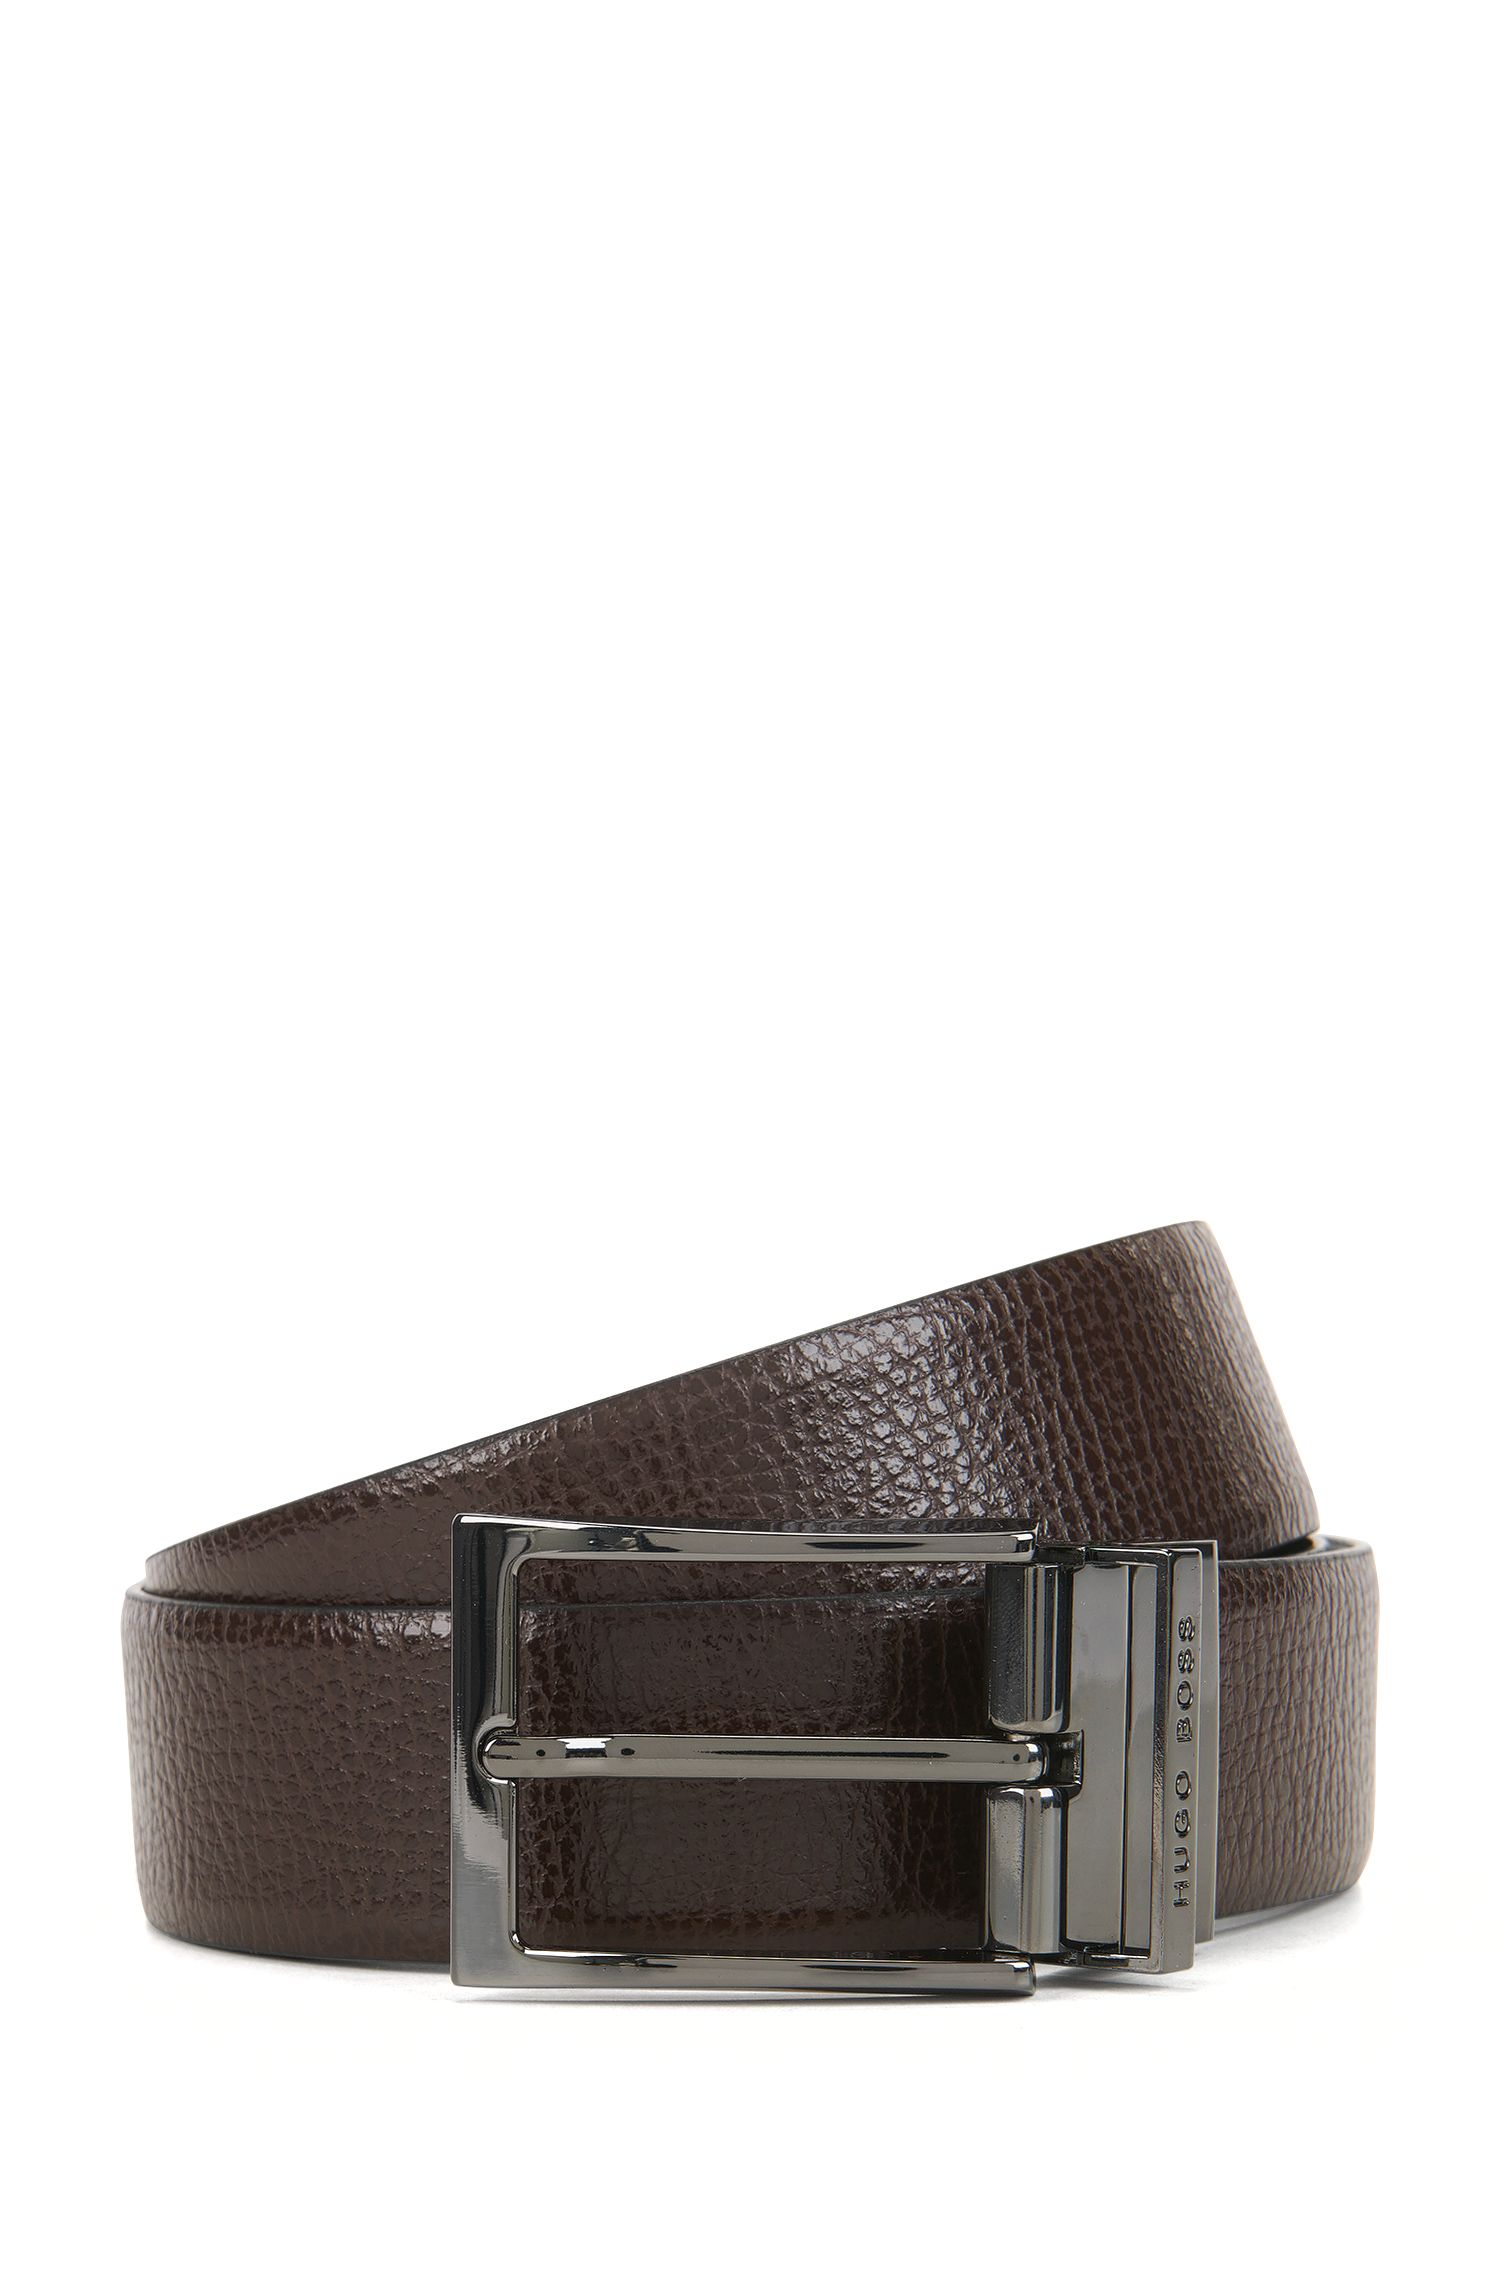 Reversible belt in contrast leather with engraved keeper